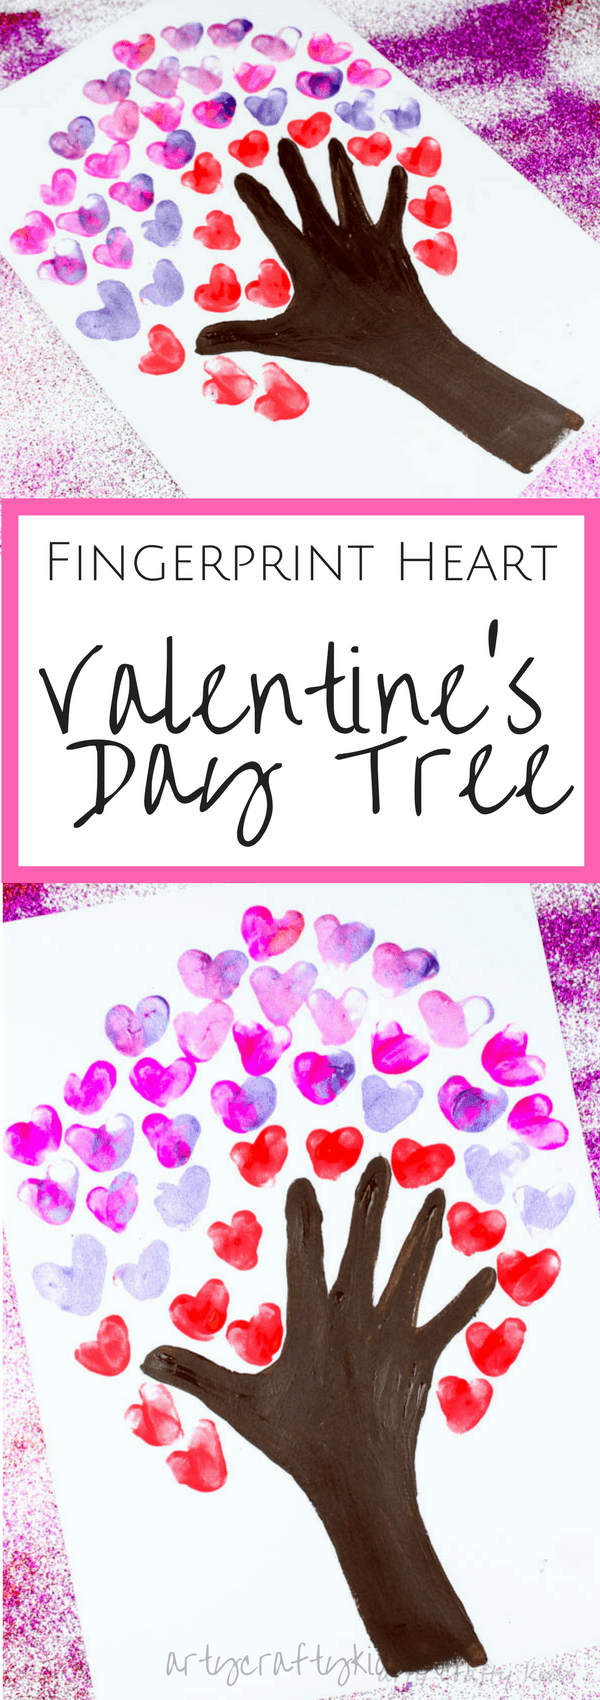 Fingerprint Heart Valentines Day Tree -   21 valentines crafts for kids